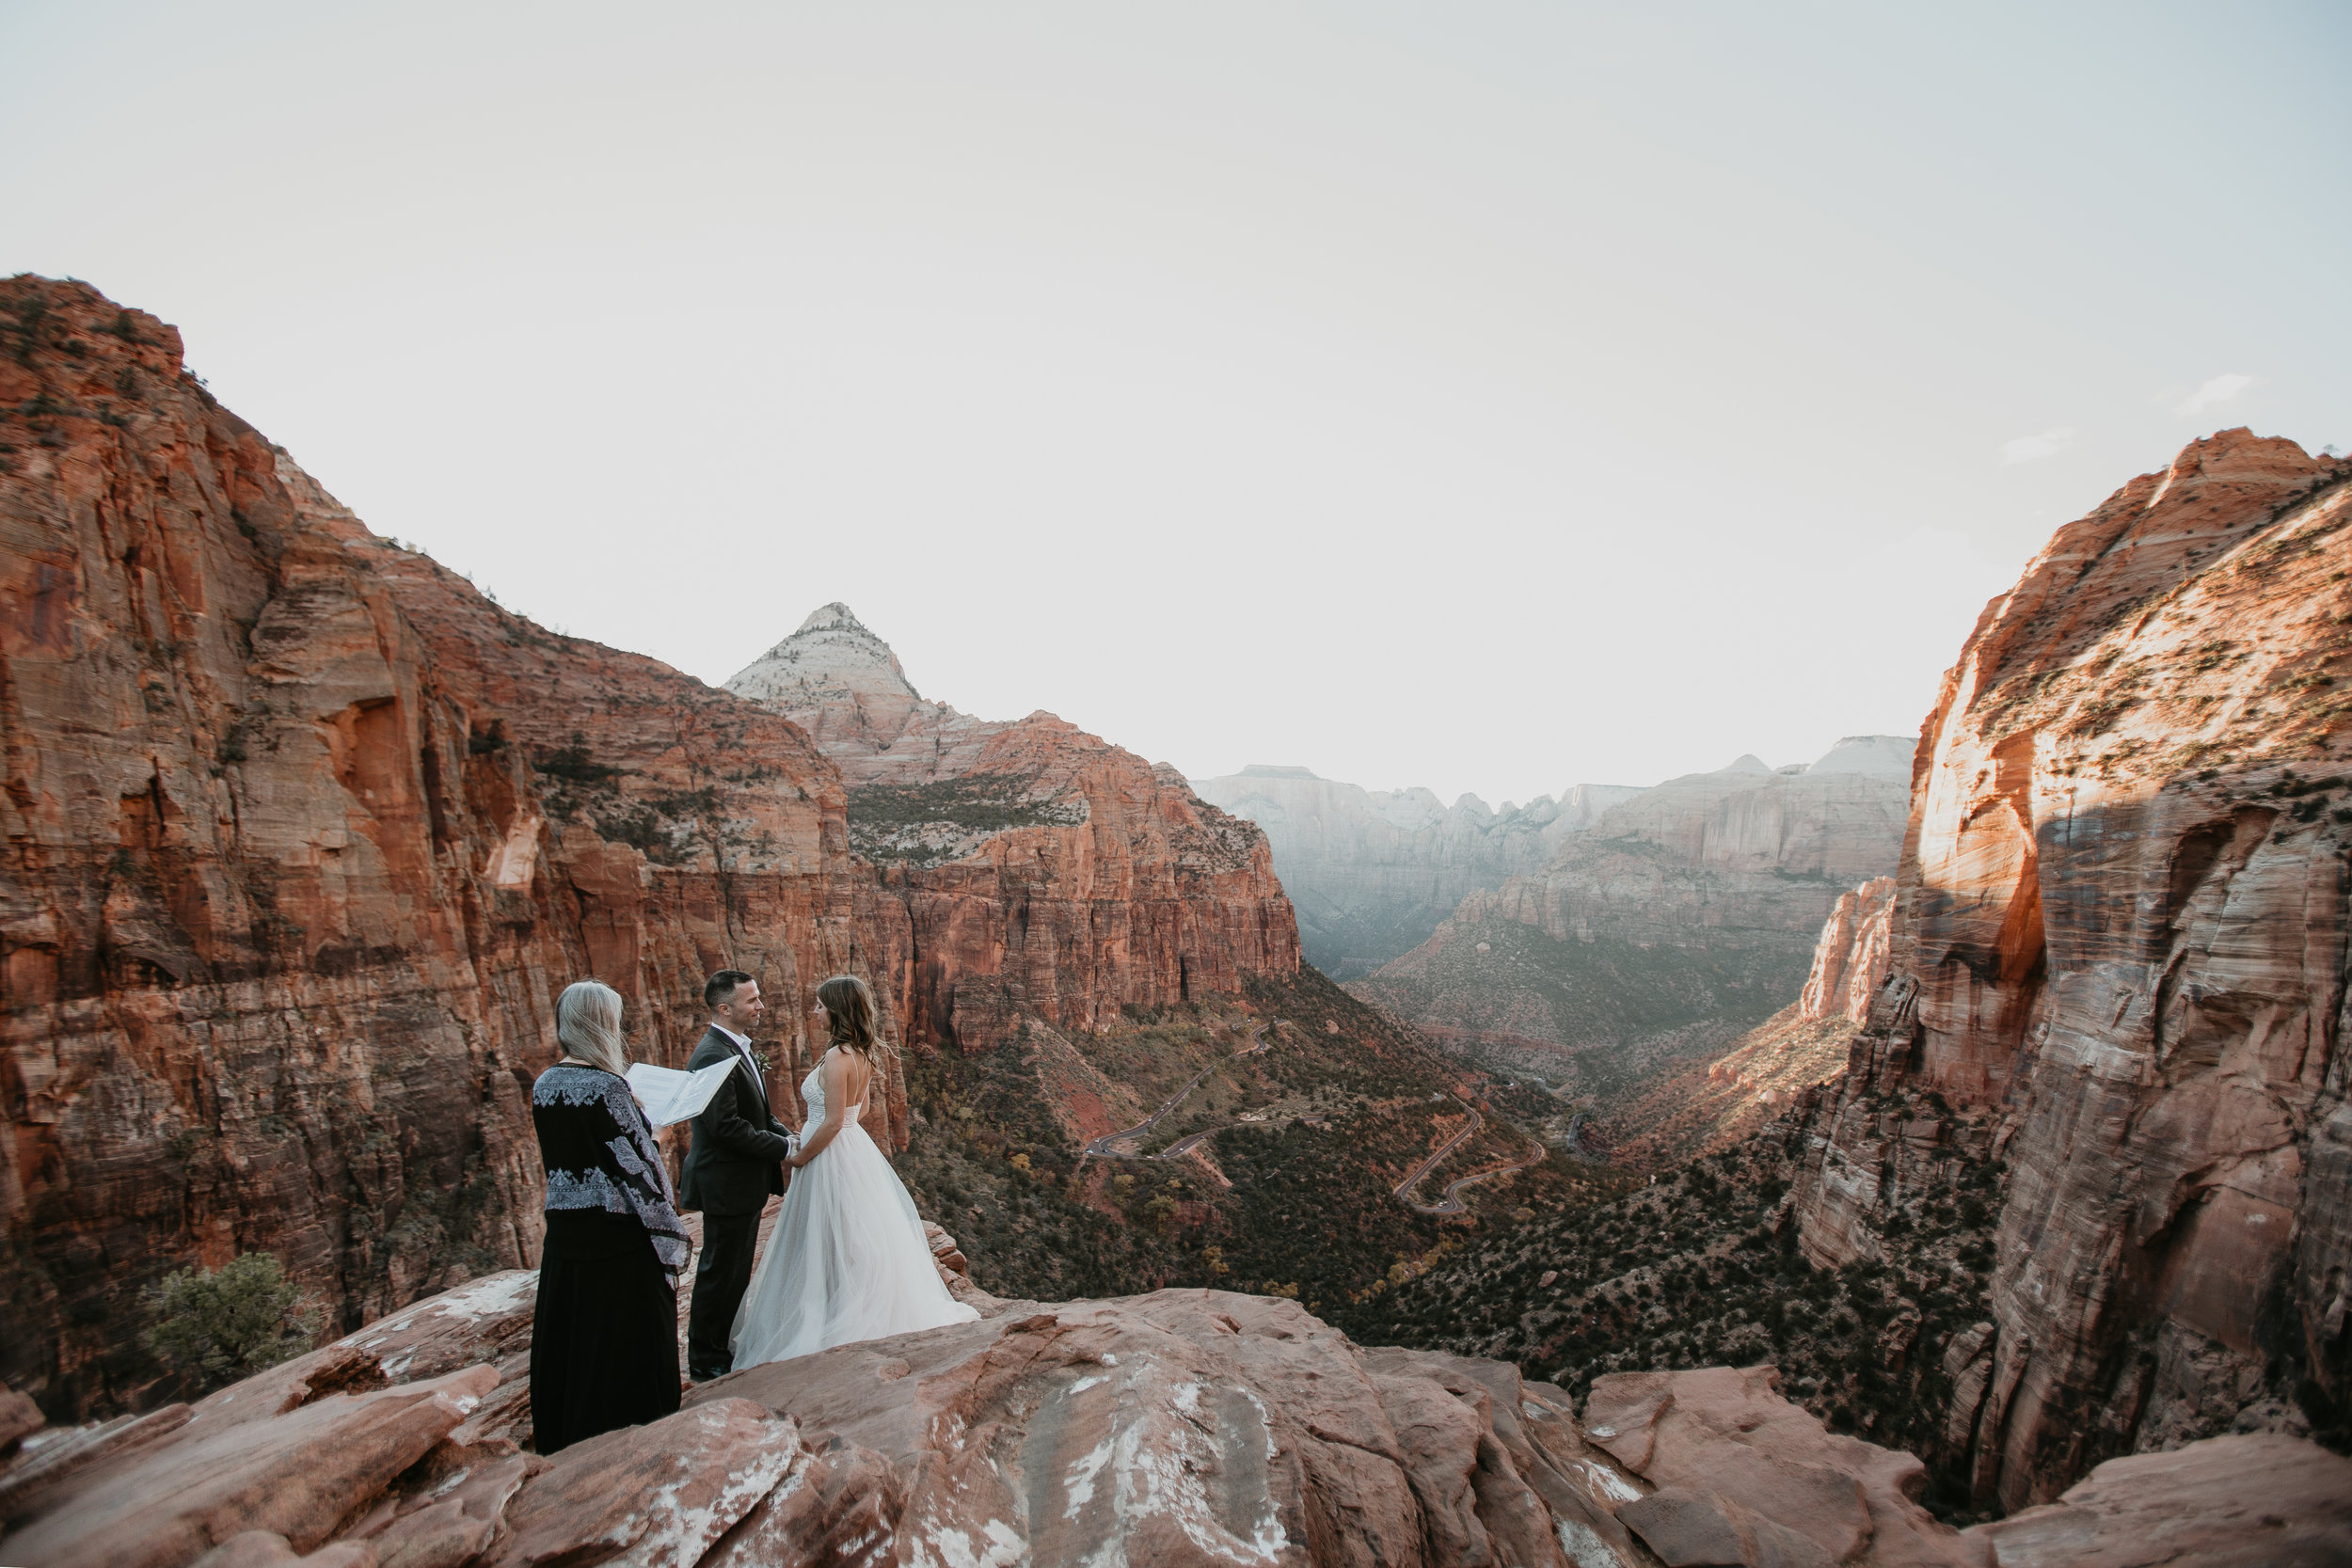 nicole-daacke-photography-zion-national-park-elopement-photographer-canyon-overlook-trail-elope-hiking-adventure-wedding-photos-fall-utah-red-rock-canyon-stgeorge-eloping-photographer-53.jpg